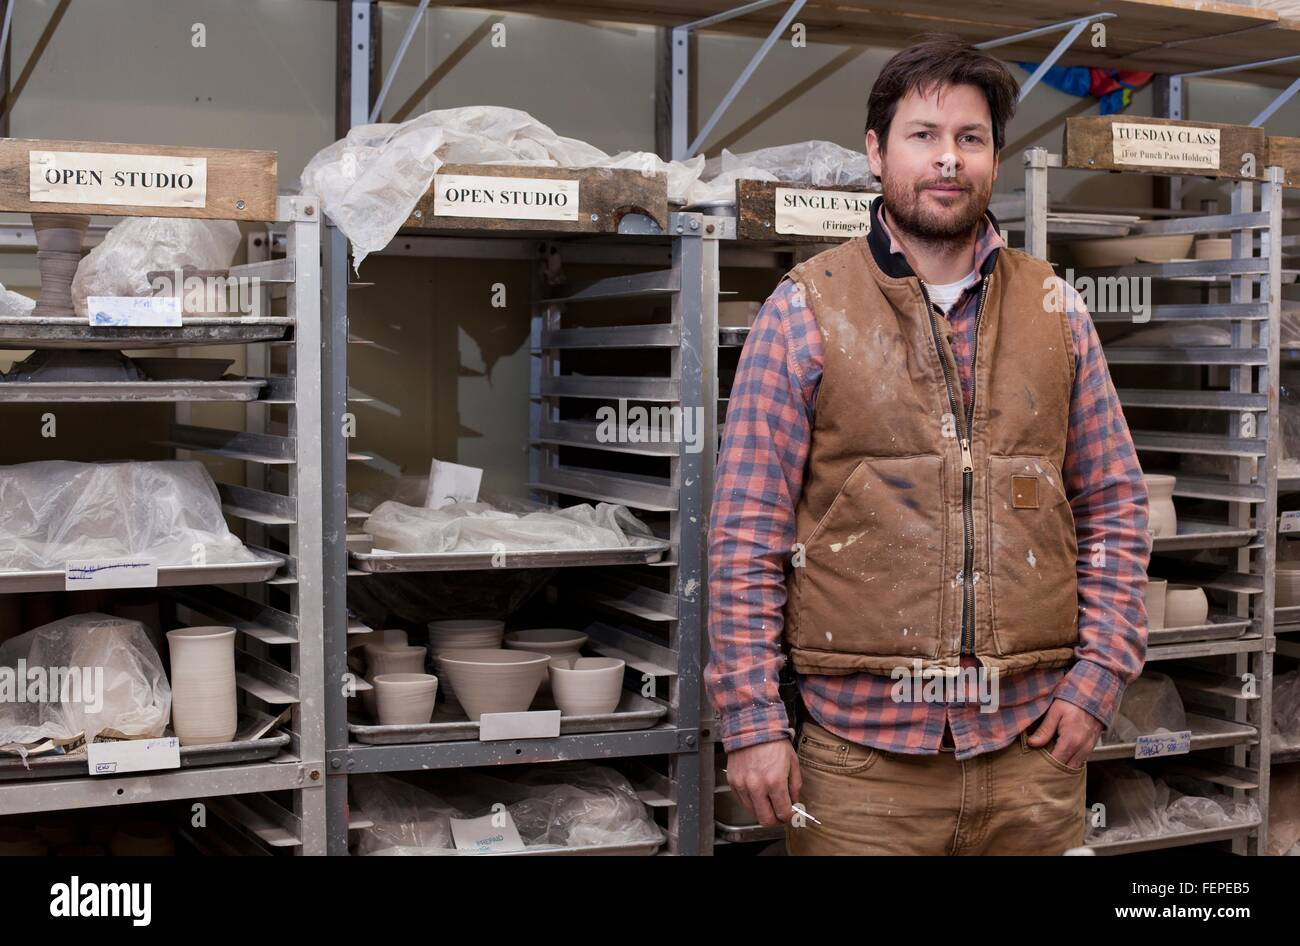 Potter in storage room, hand in pocket looking at camera smiling - Stock Image